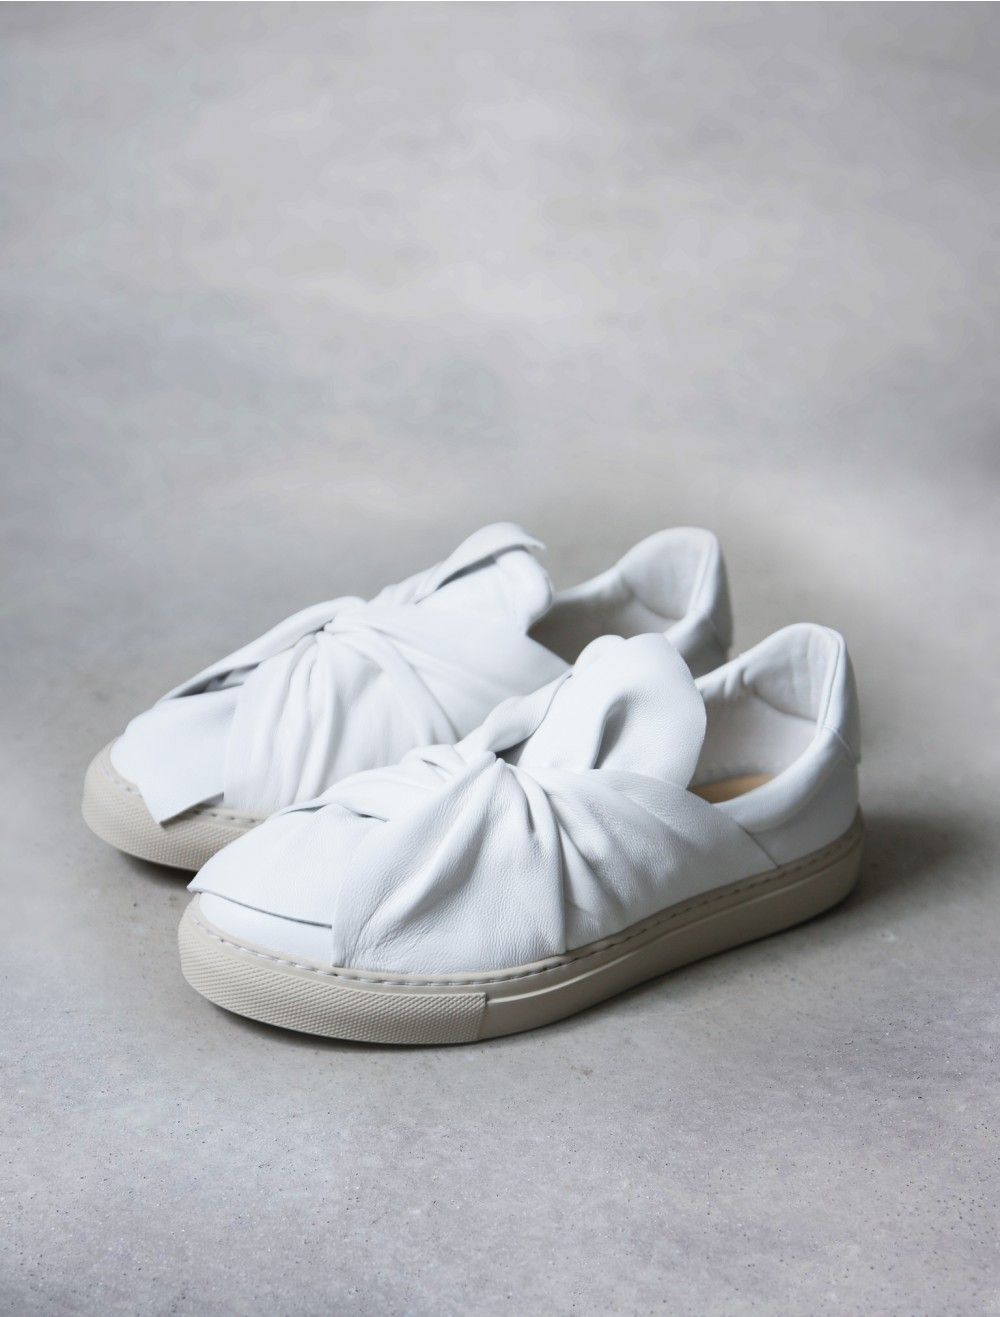 Ports 1961 Bow Sneakers White